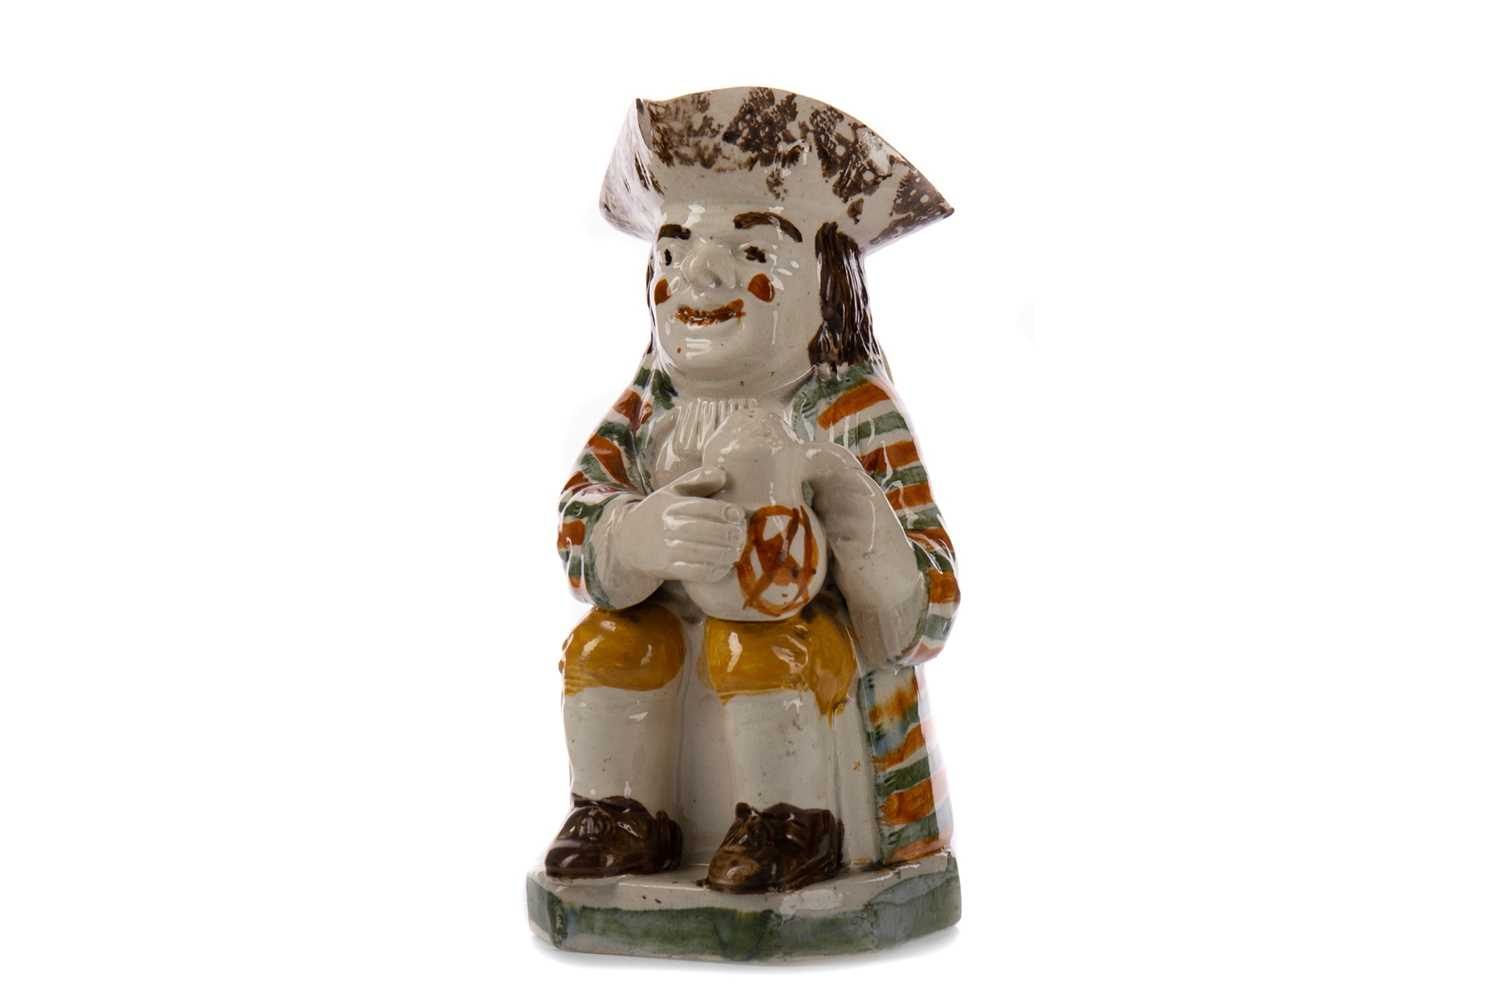 Lot 1047 - AN EARLY 19TH CENTURY TOBY JUG